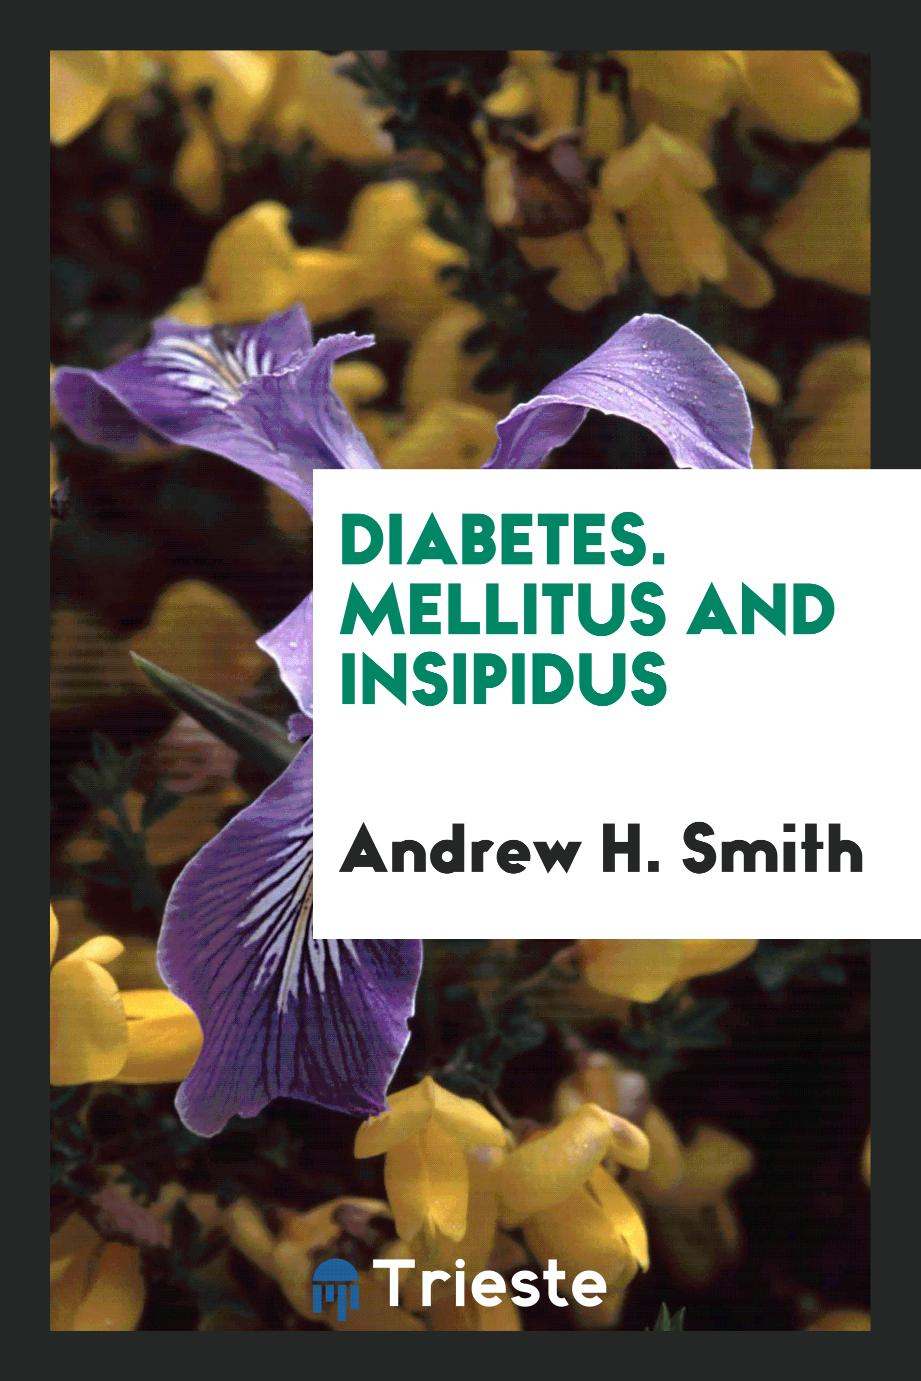 Diabetes. Mellitus and Insipidus